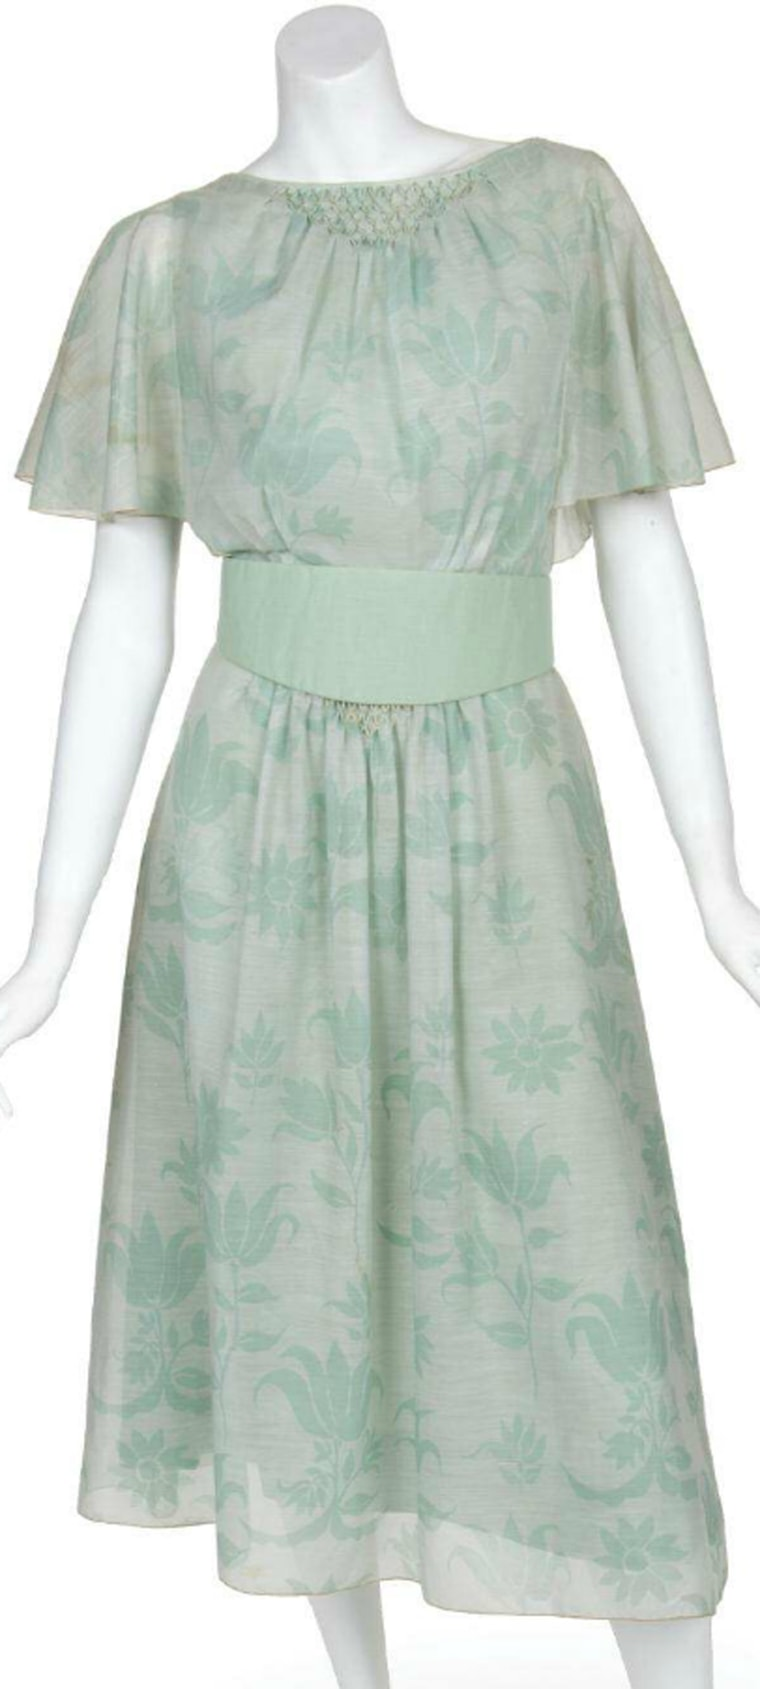 Julie Andrews wore this dress in several scenes in